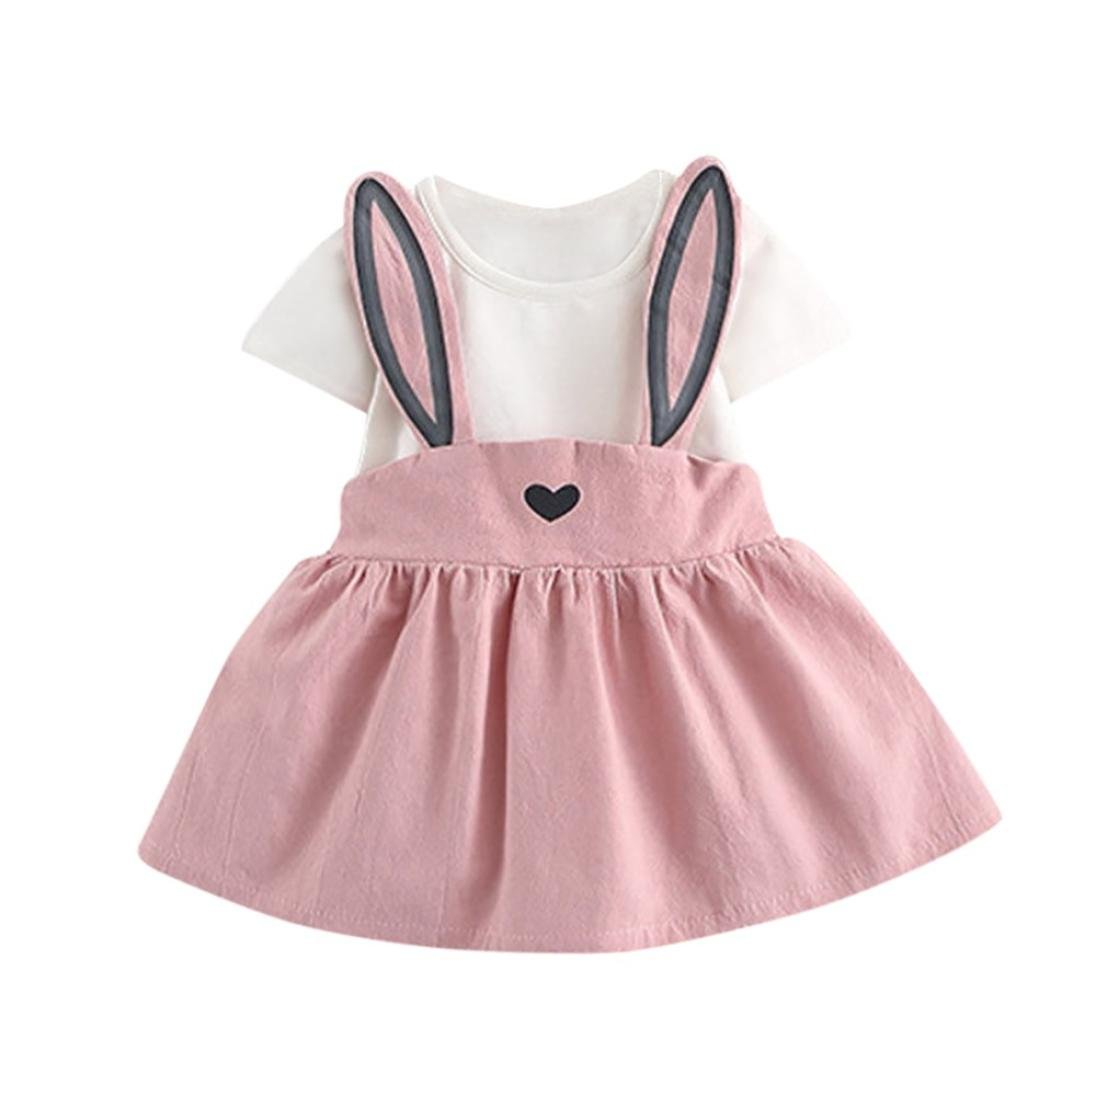 ac851765a4 Amazon.com  Hot Sale! Newborn Toddler Baby Girls Summer Casual Cute Rabbit  Ear Heart Strap Dress Clothes 0-24 Months  Clothing